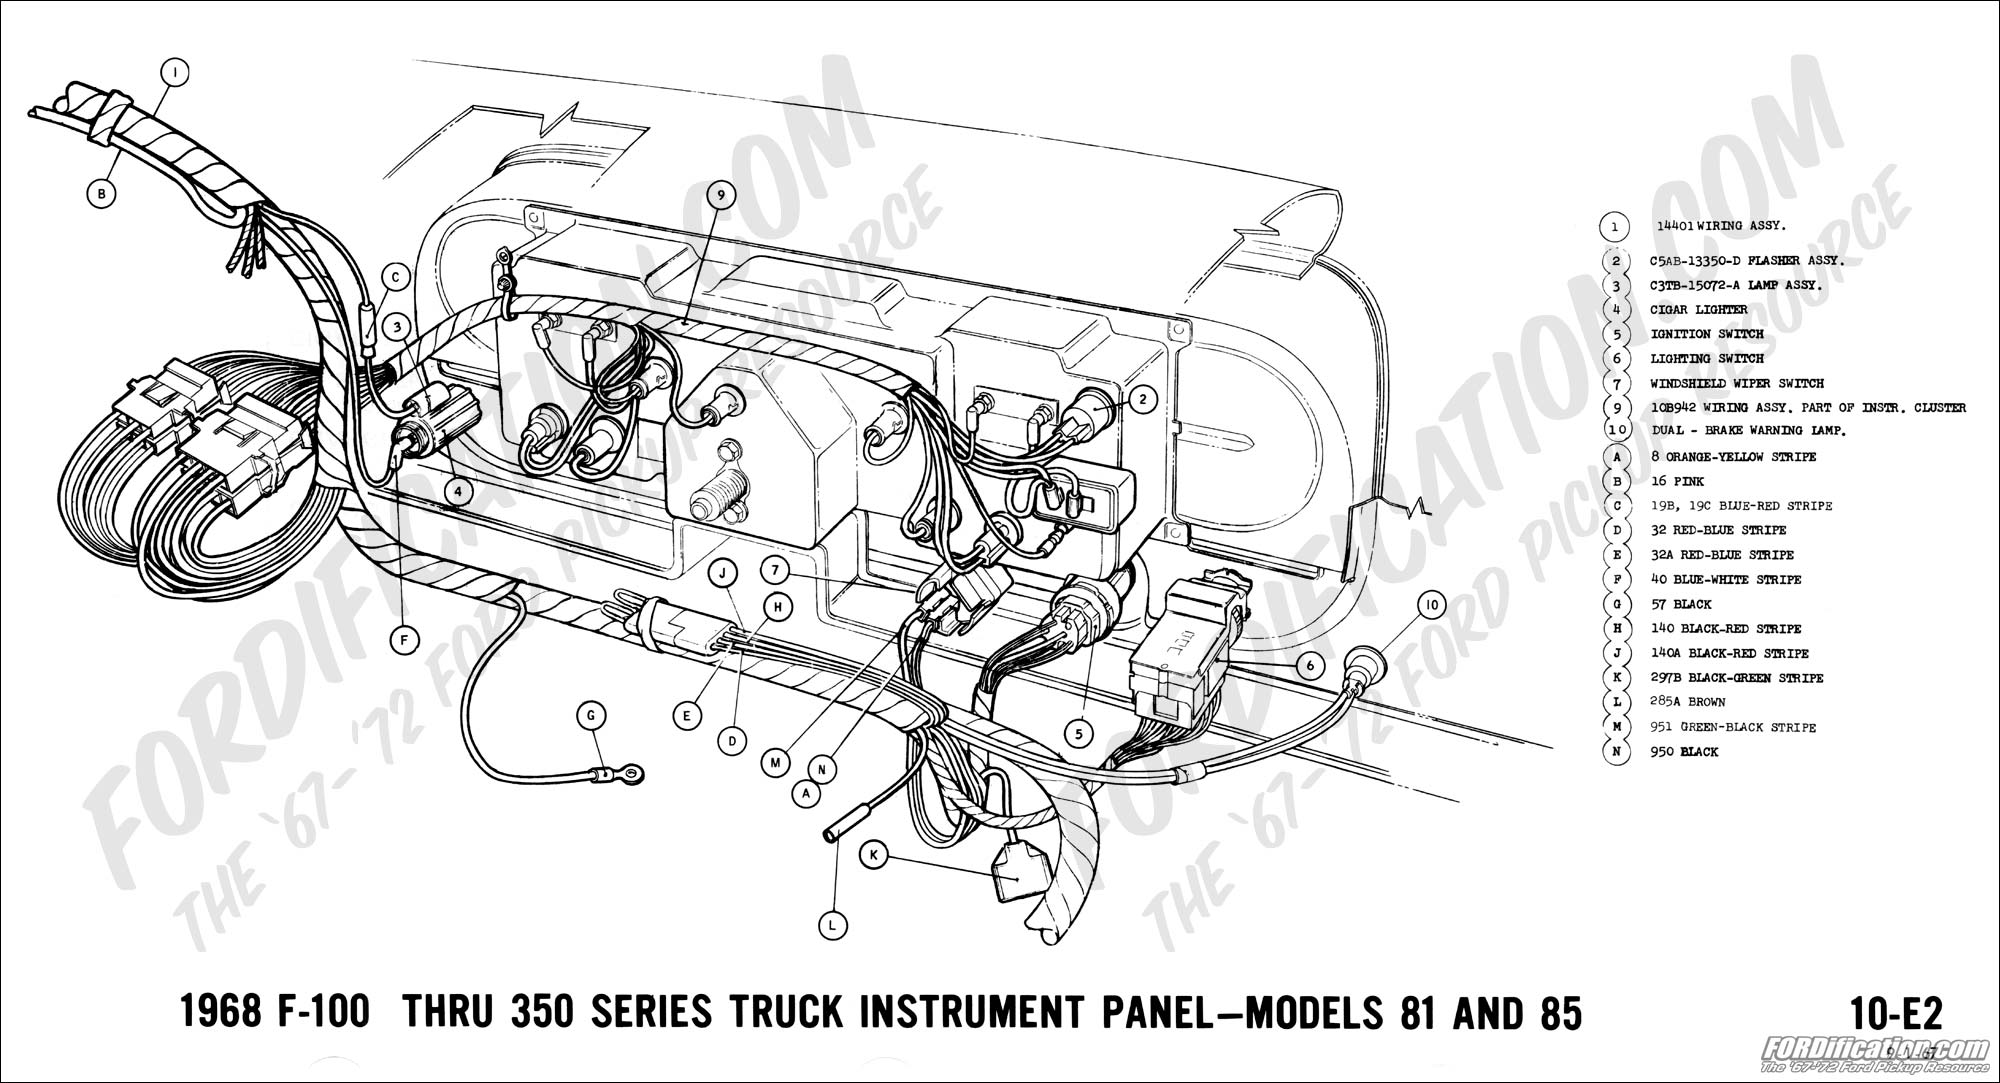 Wiring Diagrams 1972 Dodge Truck Library Diagram 1968 F 100 Thru 350 Instrument Panel